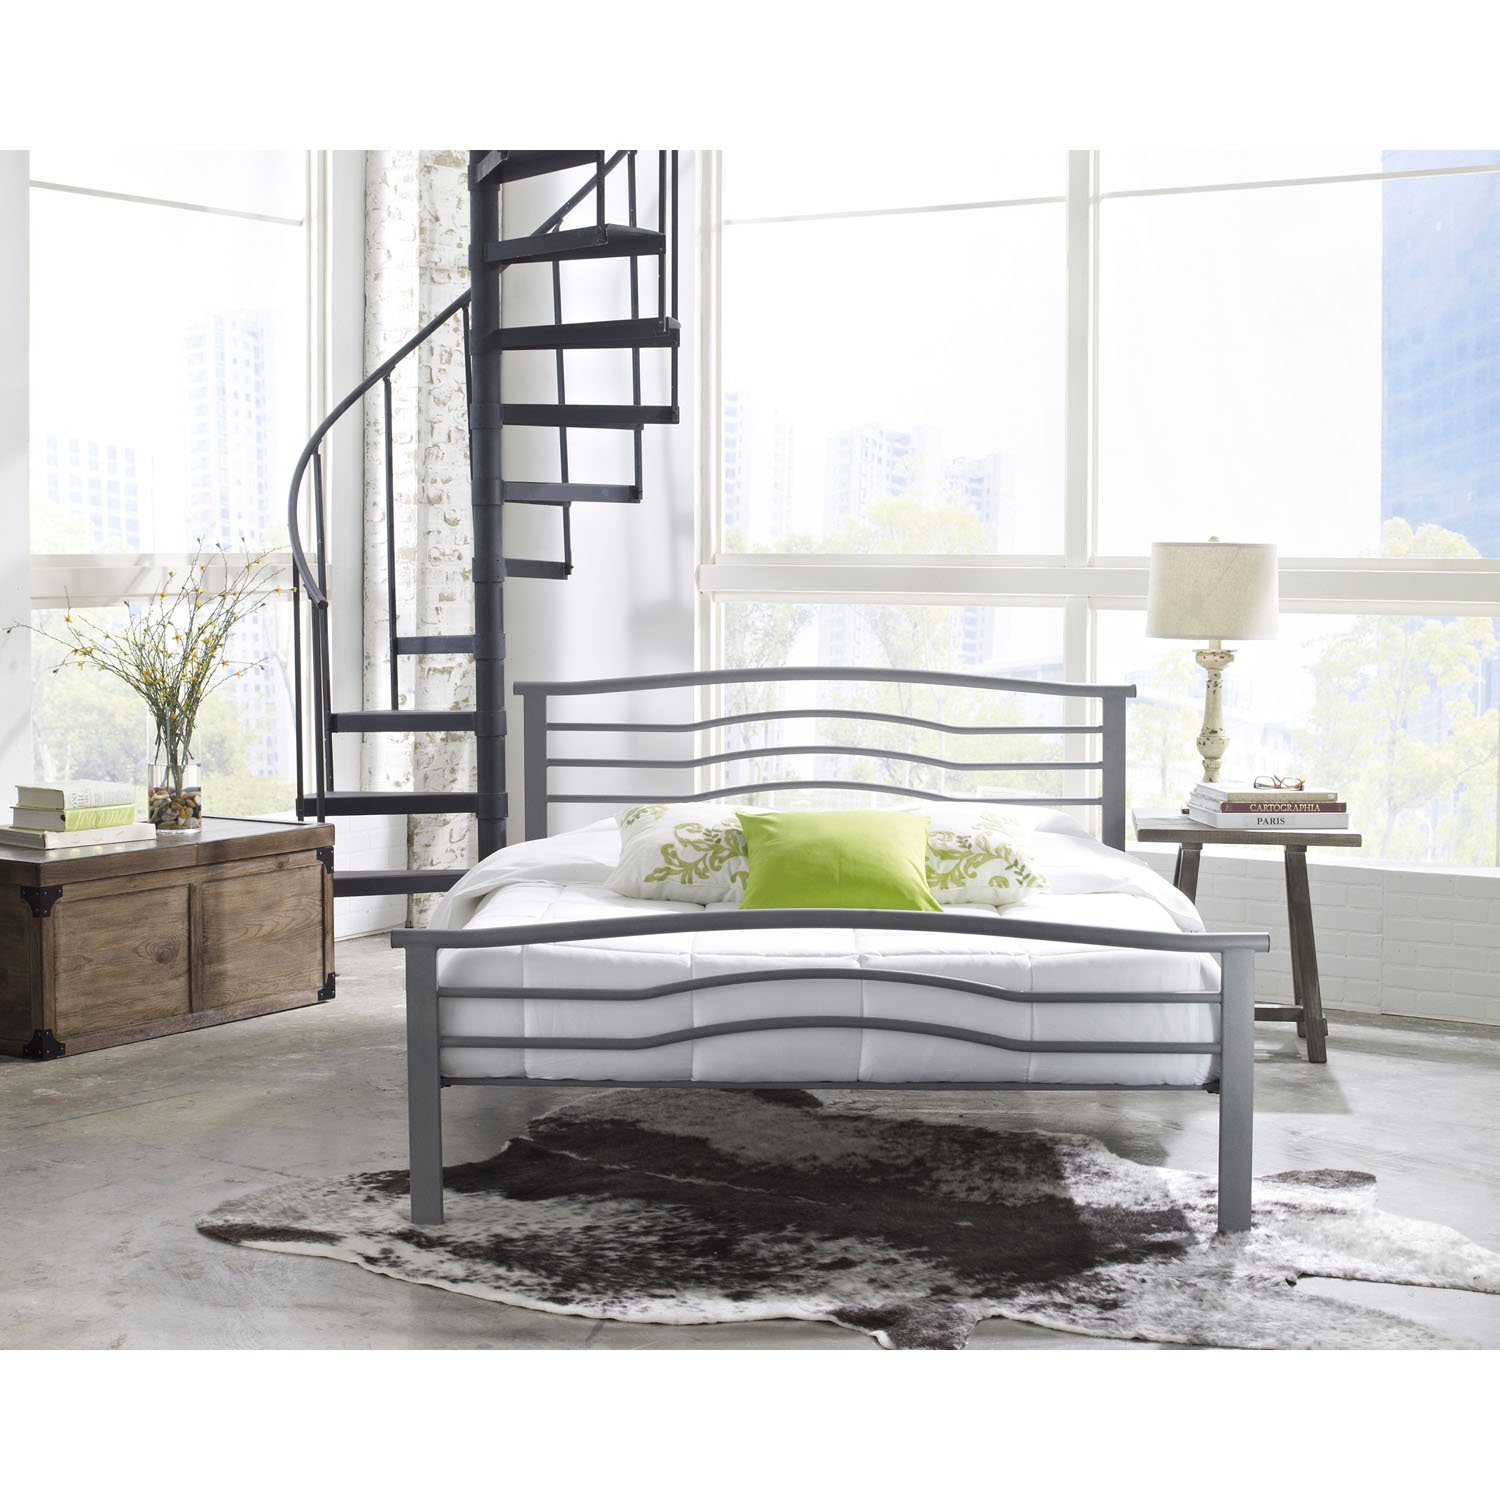 wood storage metal dimensions and solid set at bed ikea size frames with platform walmart queen headboard of bedframe full frame